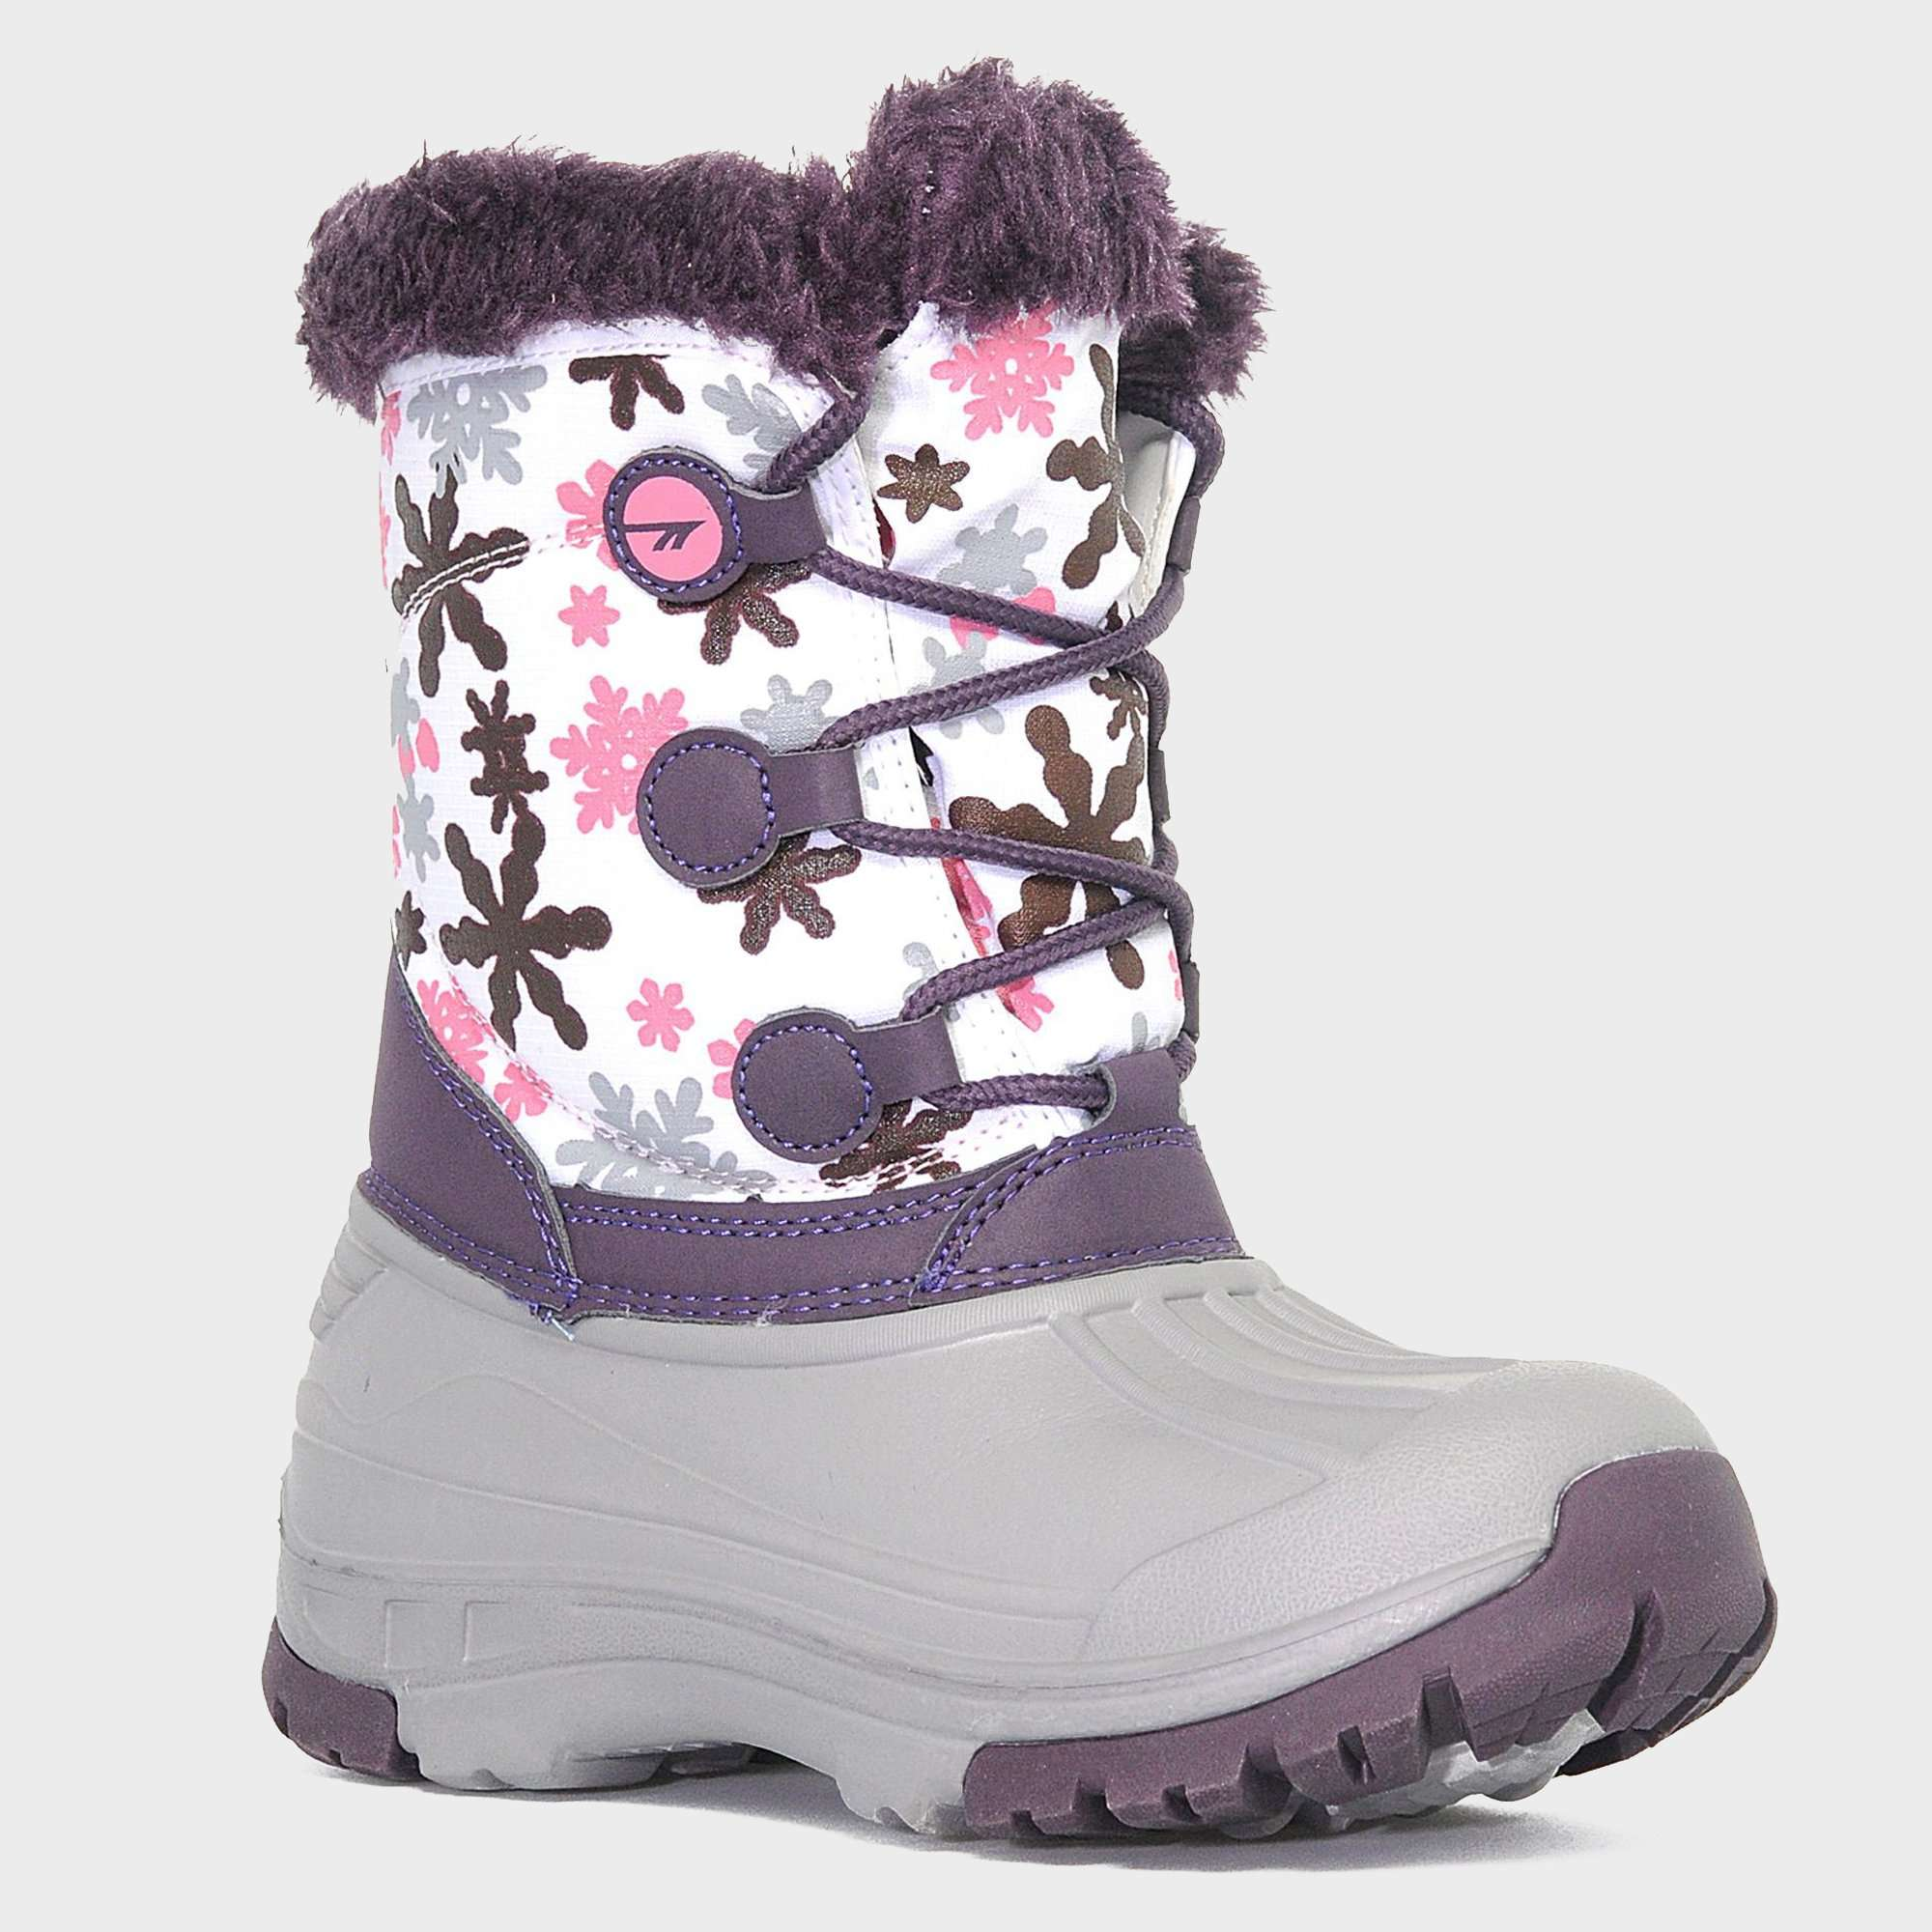 HI TEC Girls' Cornice Snow Boots